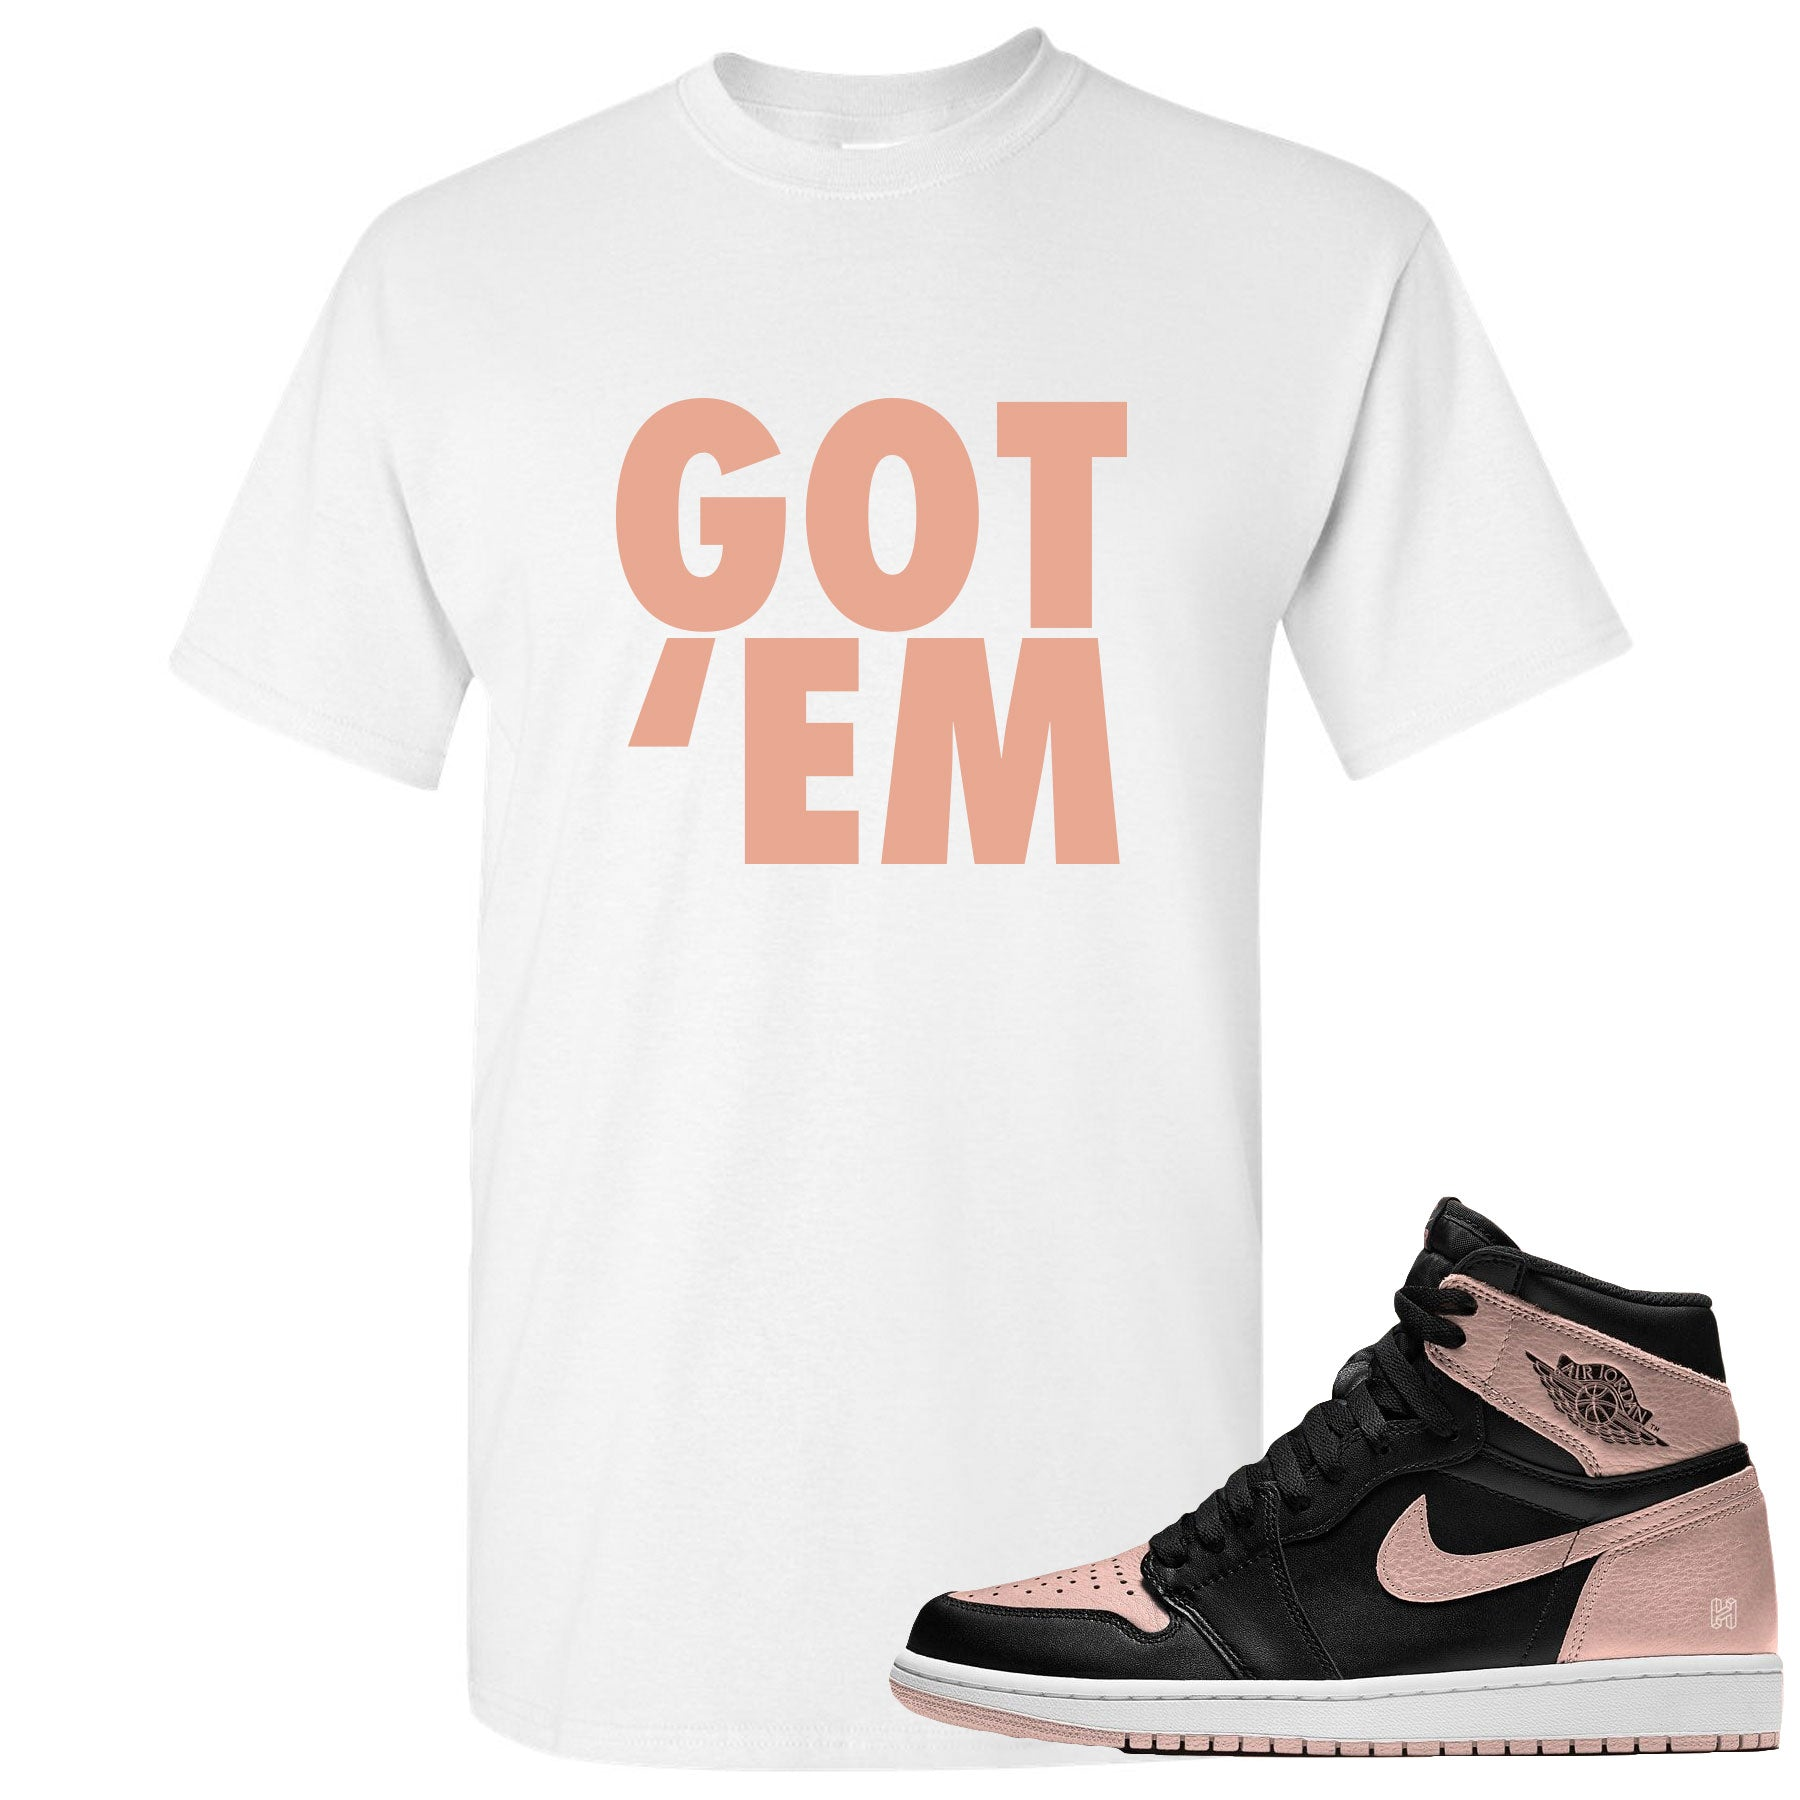 4f1166d53d2 White and crimson t-shirt to match Crimson Tint Jordan 1 shoes ...